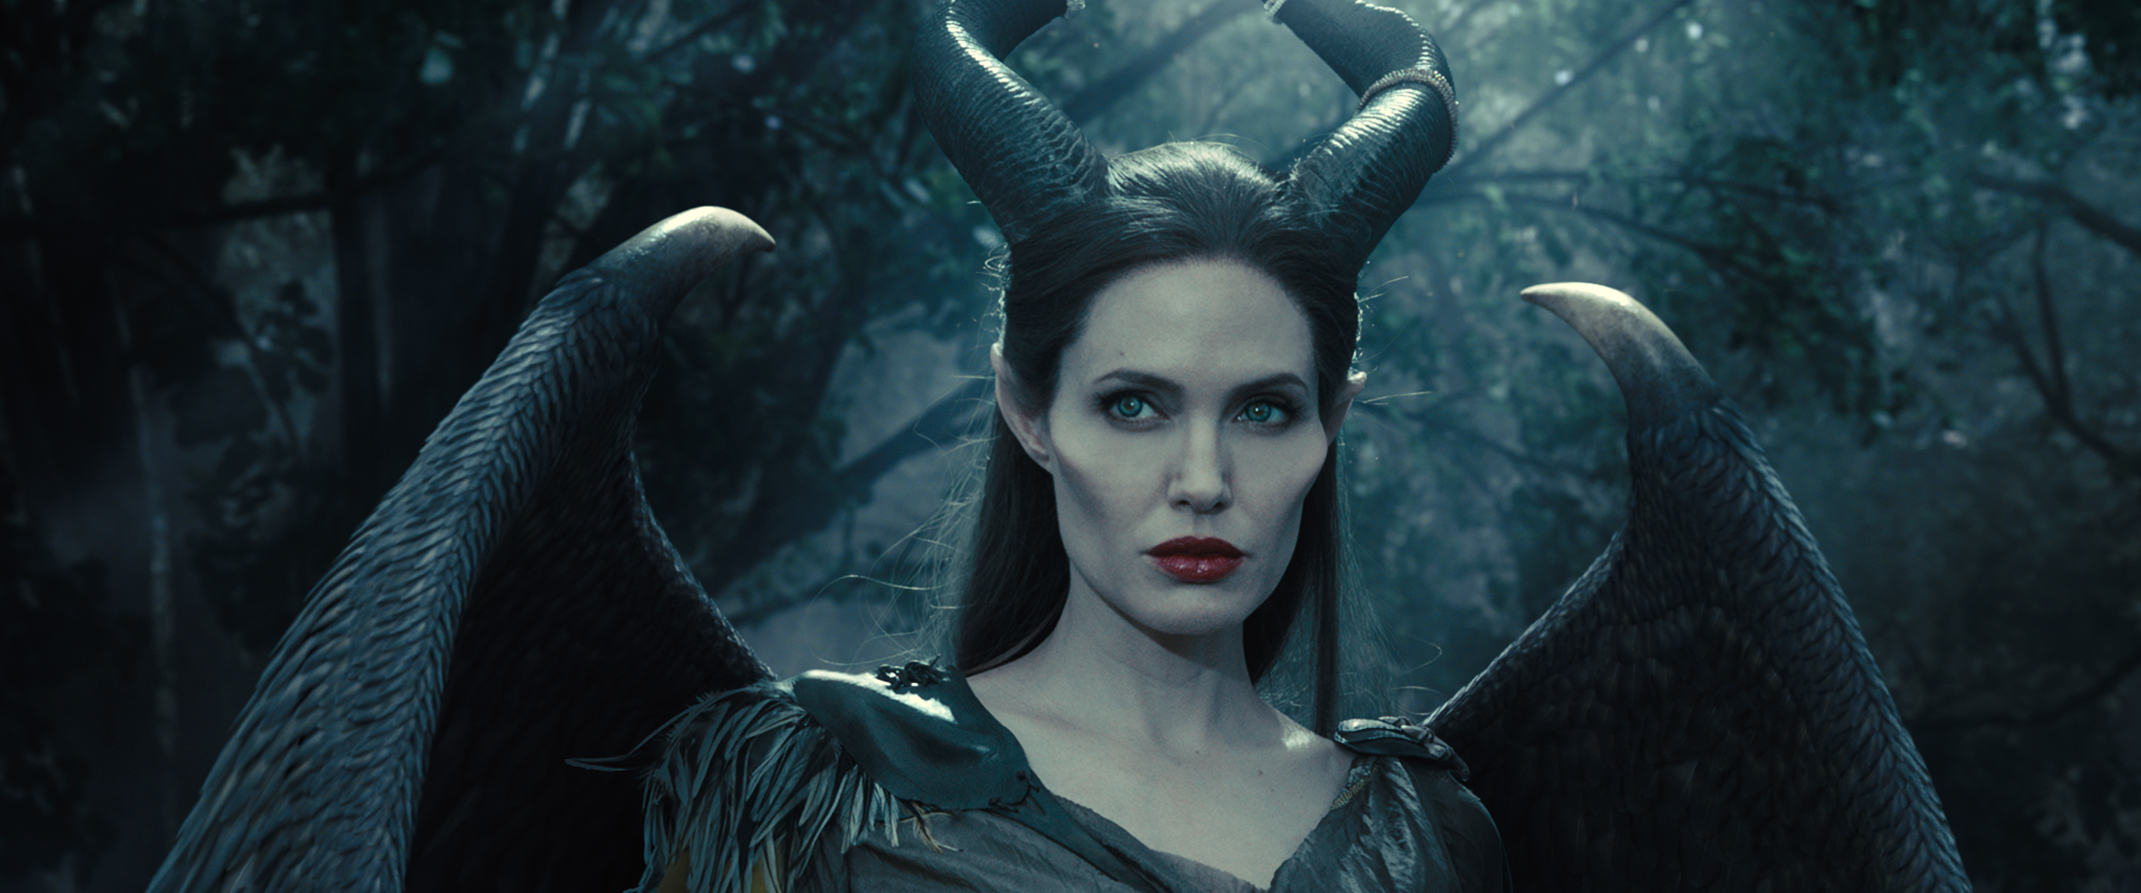 maleficent-angelina-jolie-31